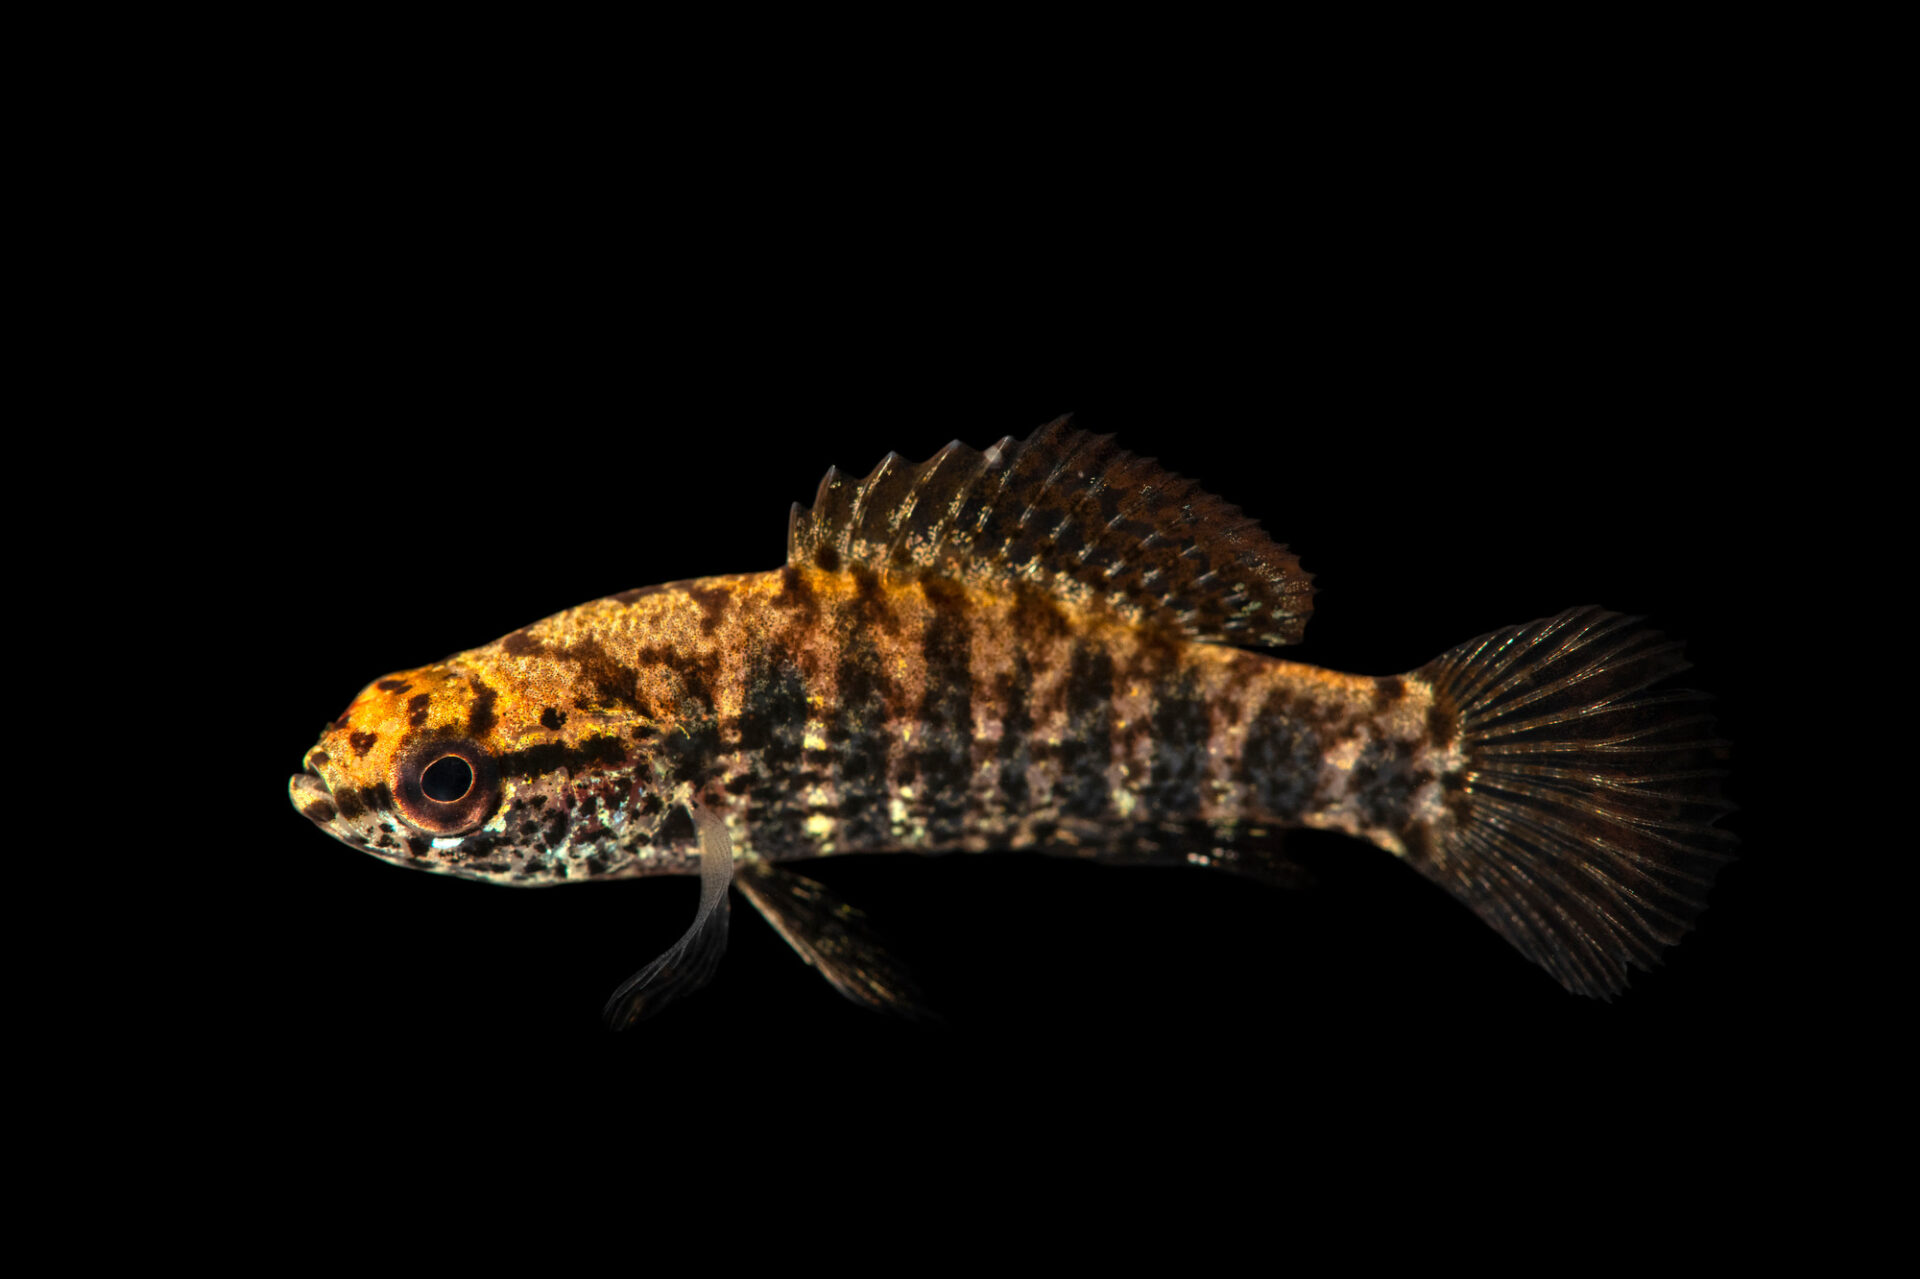 Photo: A banded pygmy sunfish (Elassoma zonatum) from a private collection in Knoxville, Tennessee.